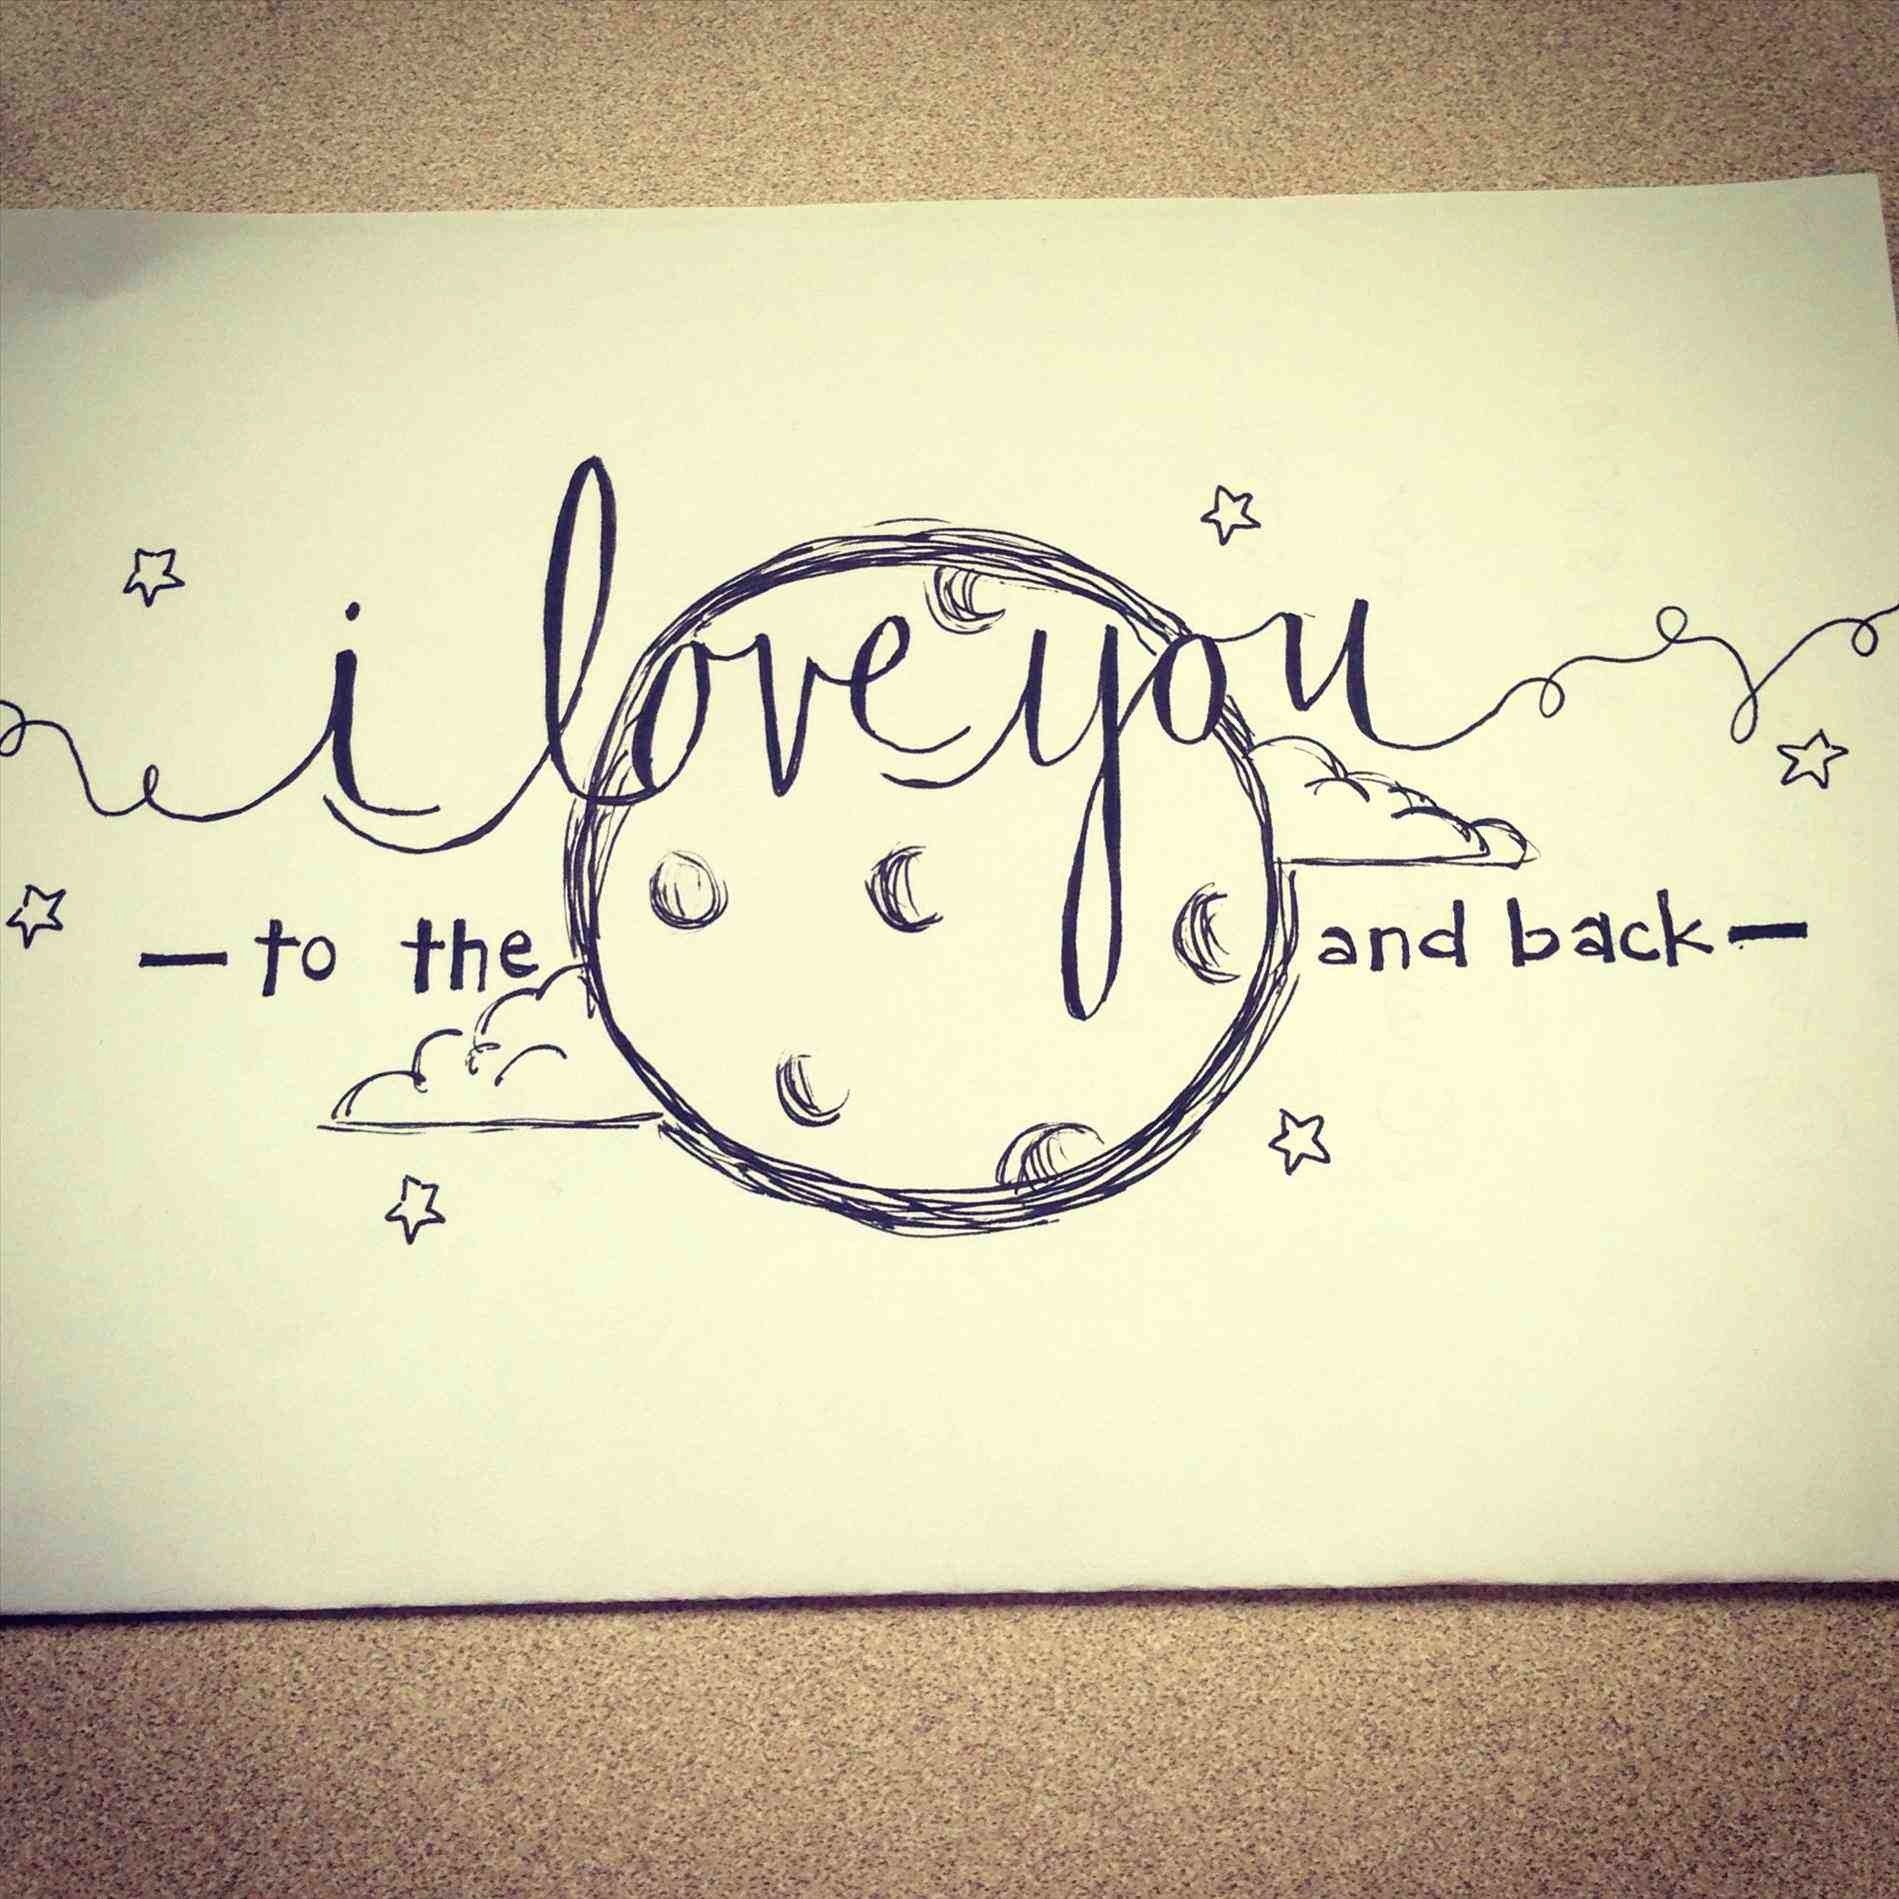 Cute Drawing Ideas (With images) | Cute drawings of love, Drawings ...